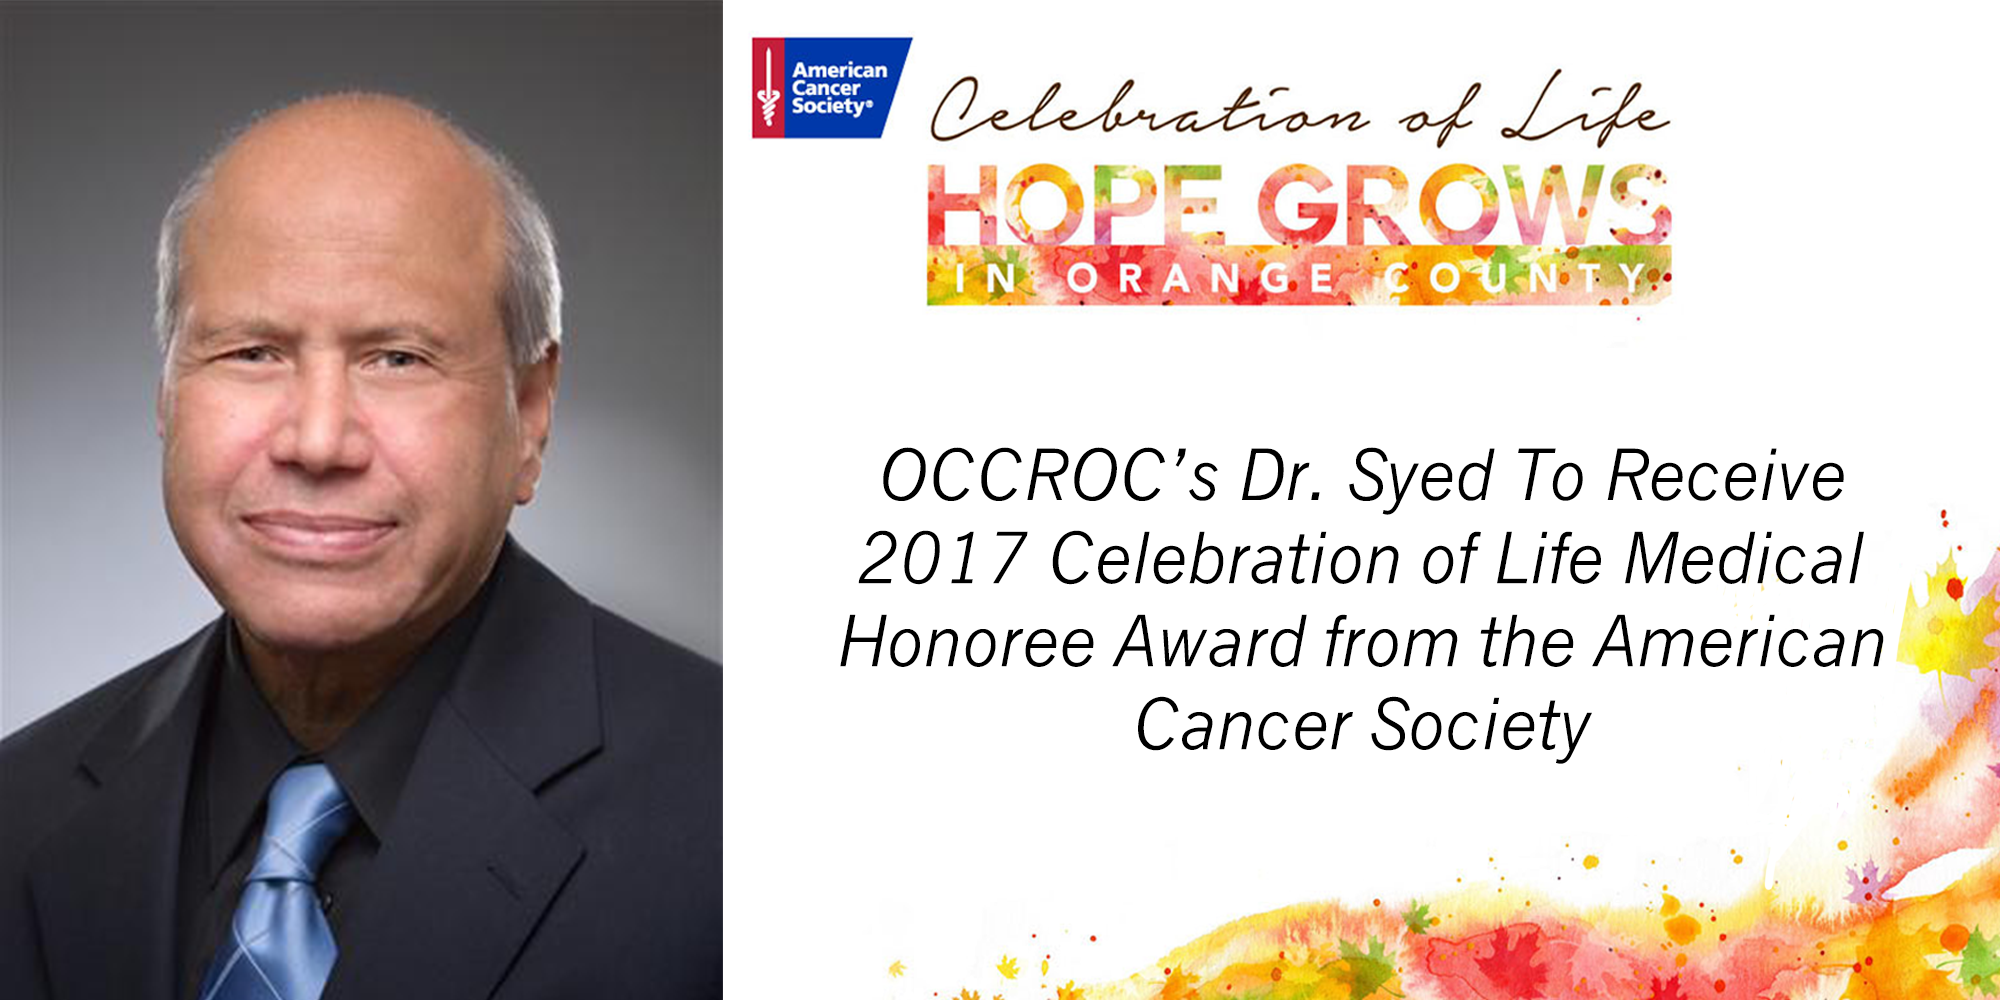 American Cancer Society To Honor Dr. Syed at Gala